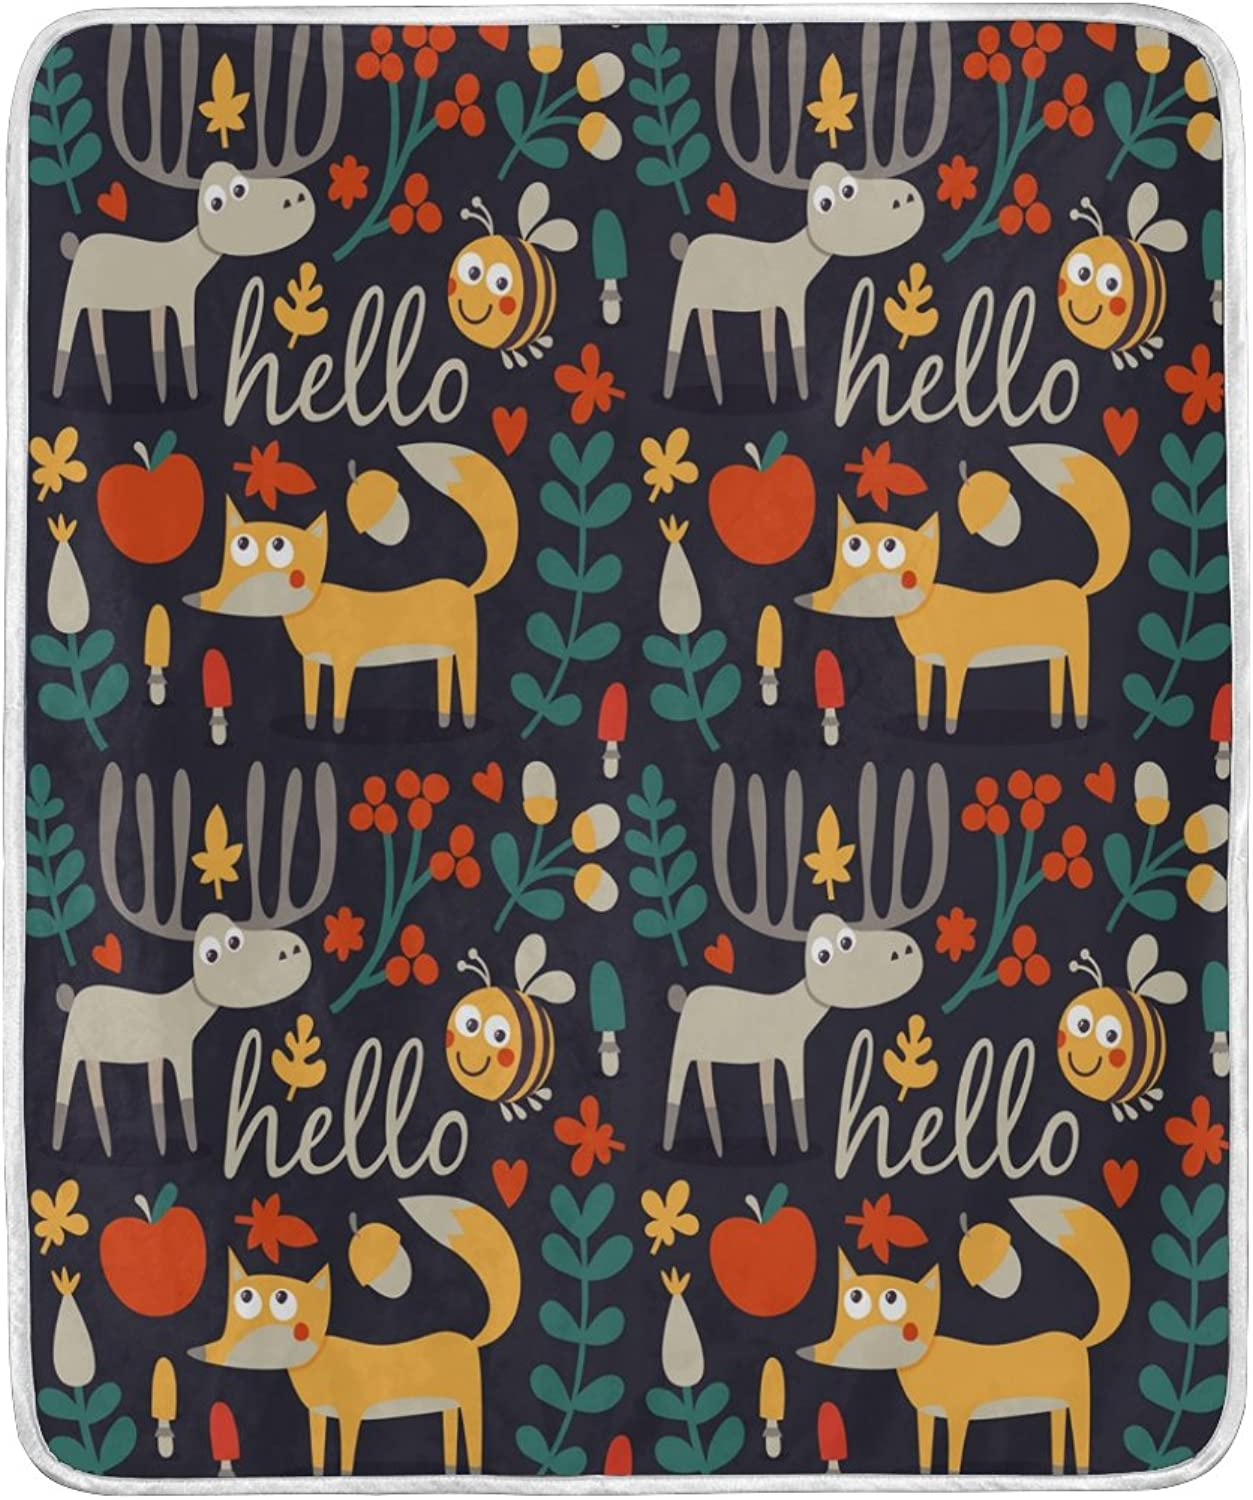 ALAZA Home Decor Hello Deer Fox Bee Floral Print Blanket Soft Warm Blankets for Bed Couch Sofa Lightweight Travelling Camping 60 x 50 inch Throw Size for Kids Boys Women